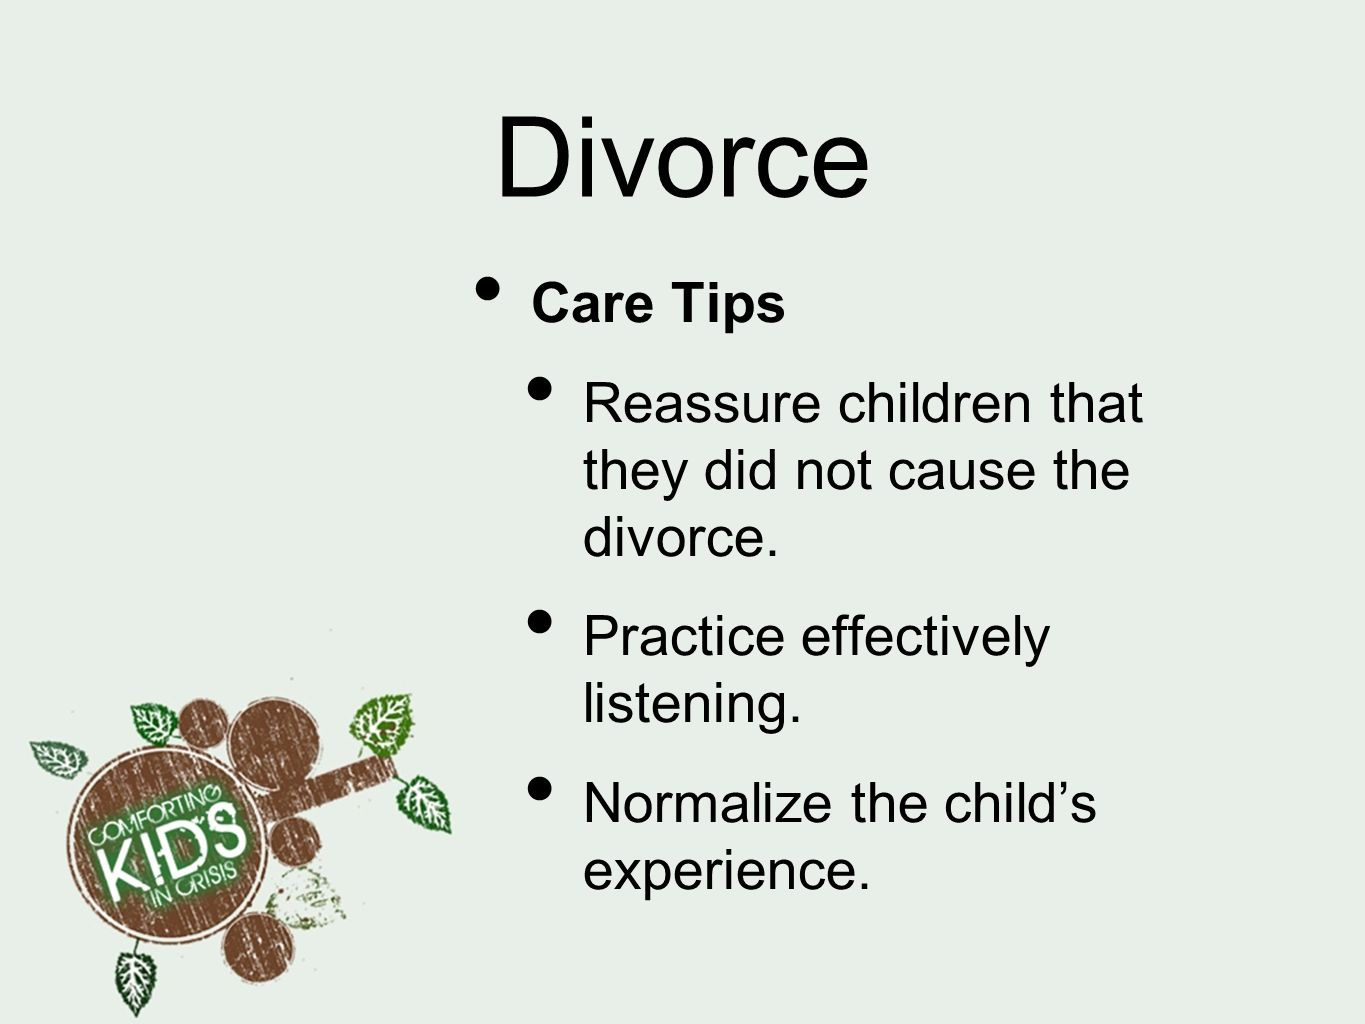 DivorceCare Tips. Reassure children that they did not cause the divorce. Practice effectively listening.